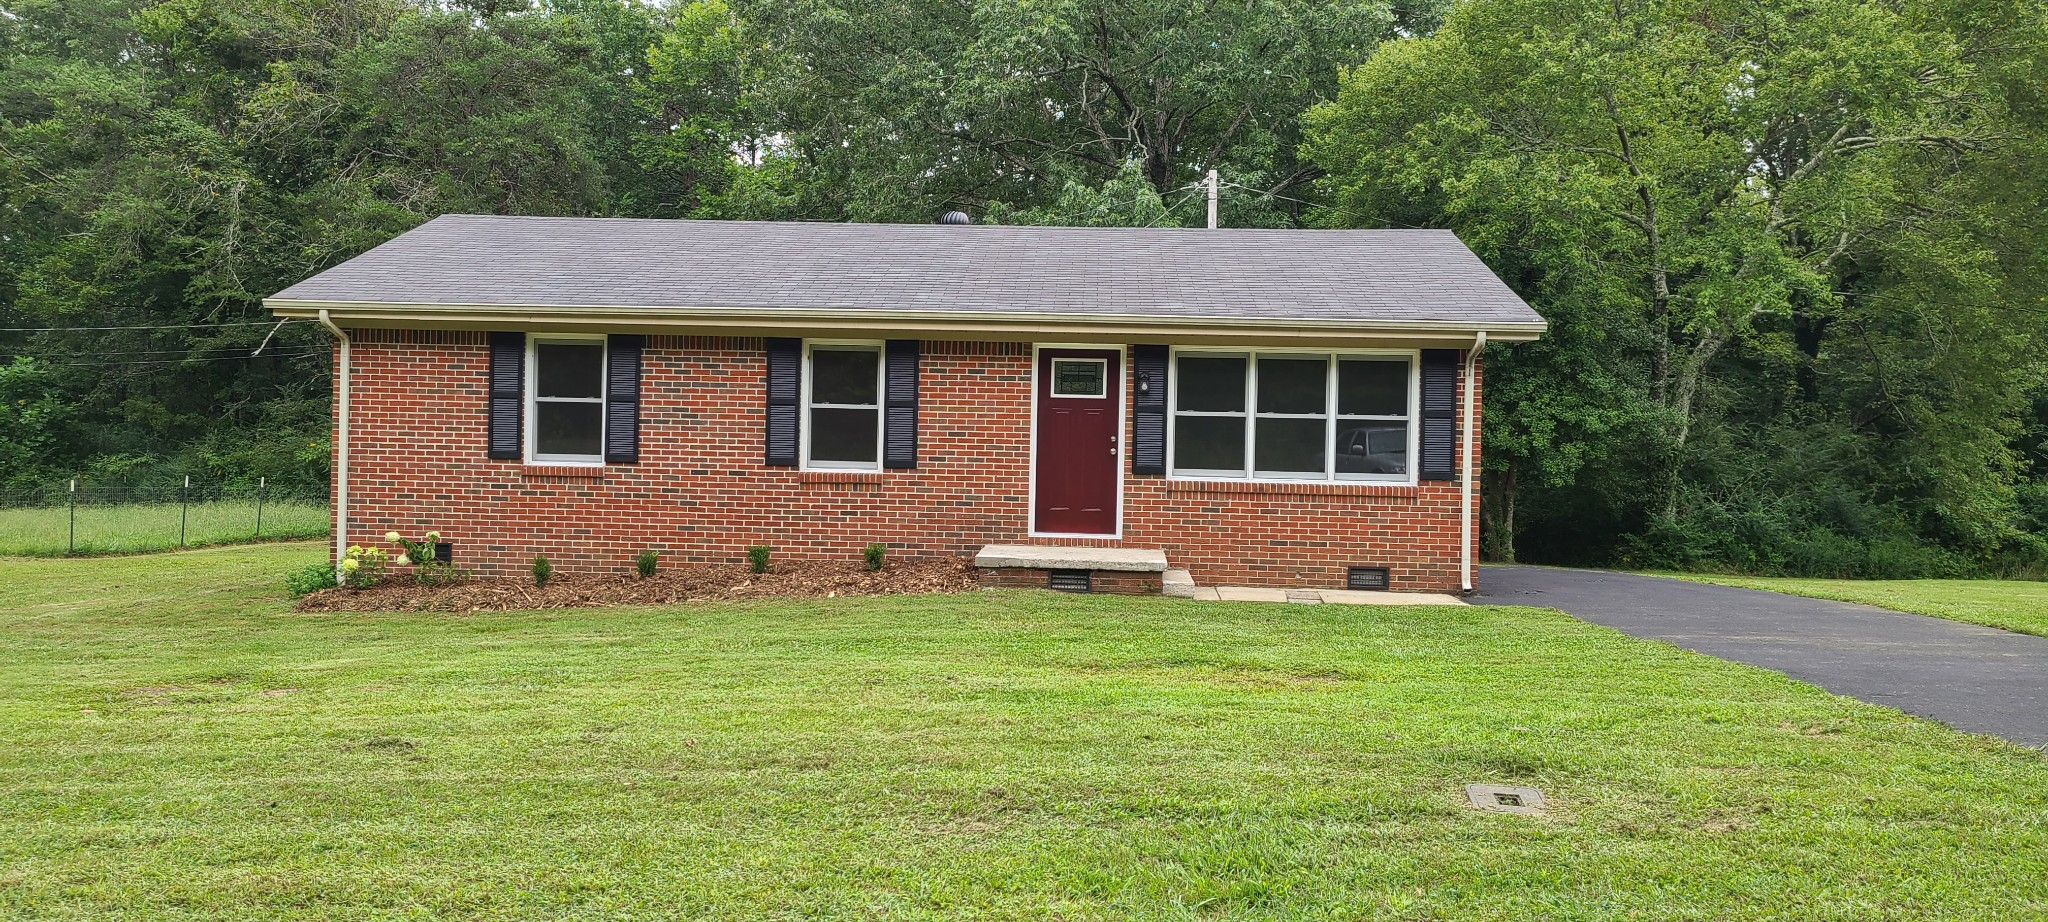 2864 Pigeon Springs Rd Property Photo - Tracy City, TN real estate listing